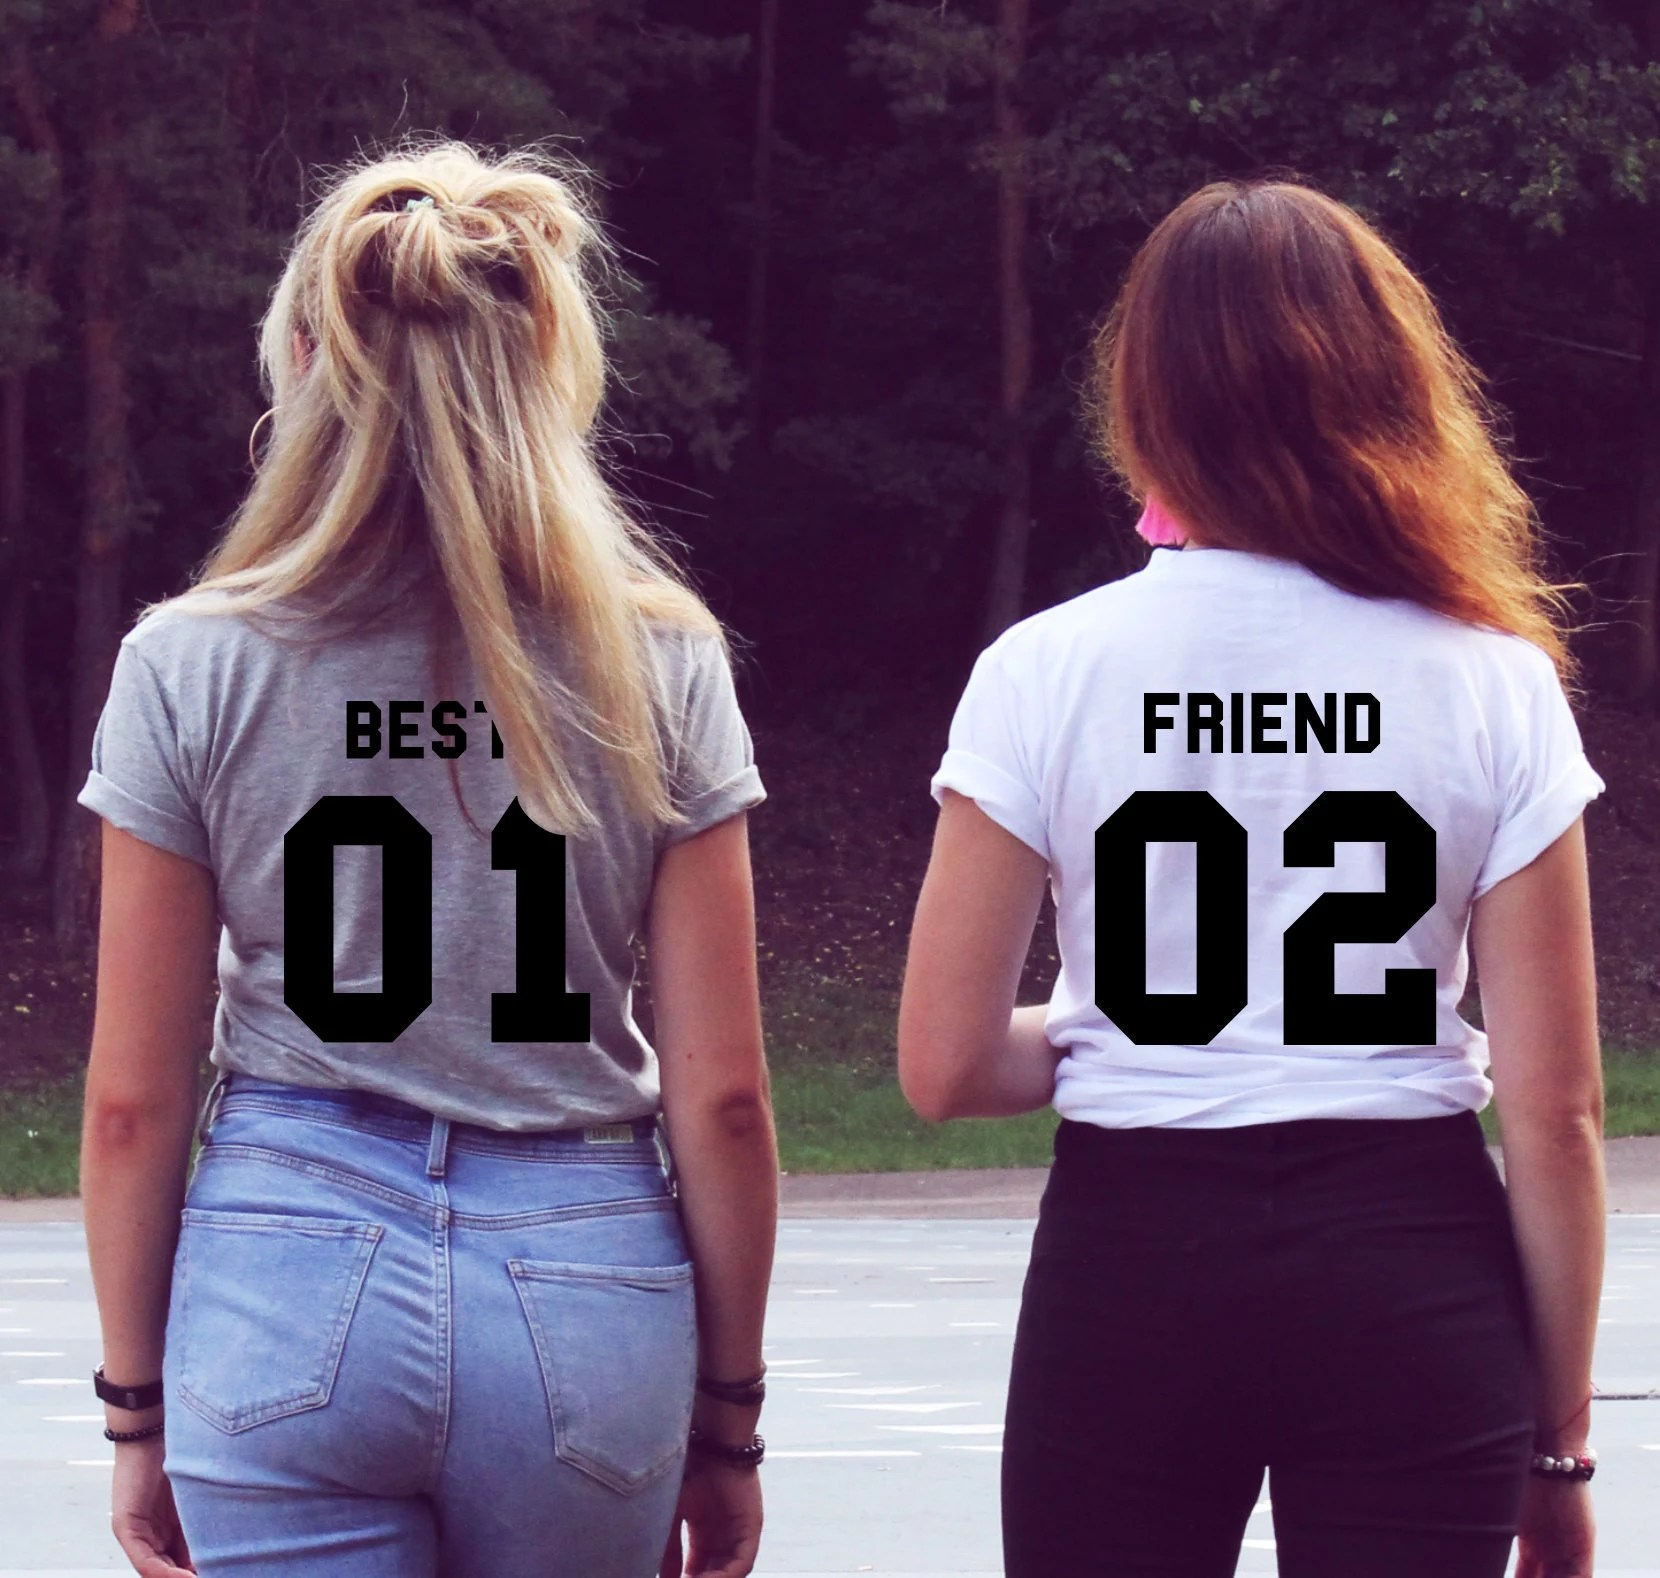 Best Friend T Shirts Set Gift For Birthday Friends Matching Etsy